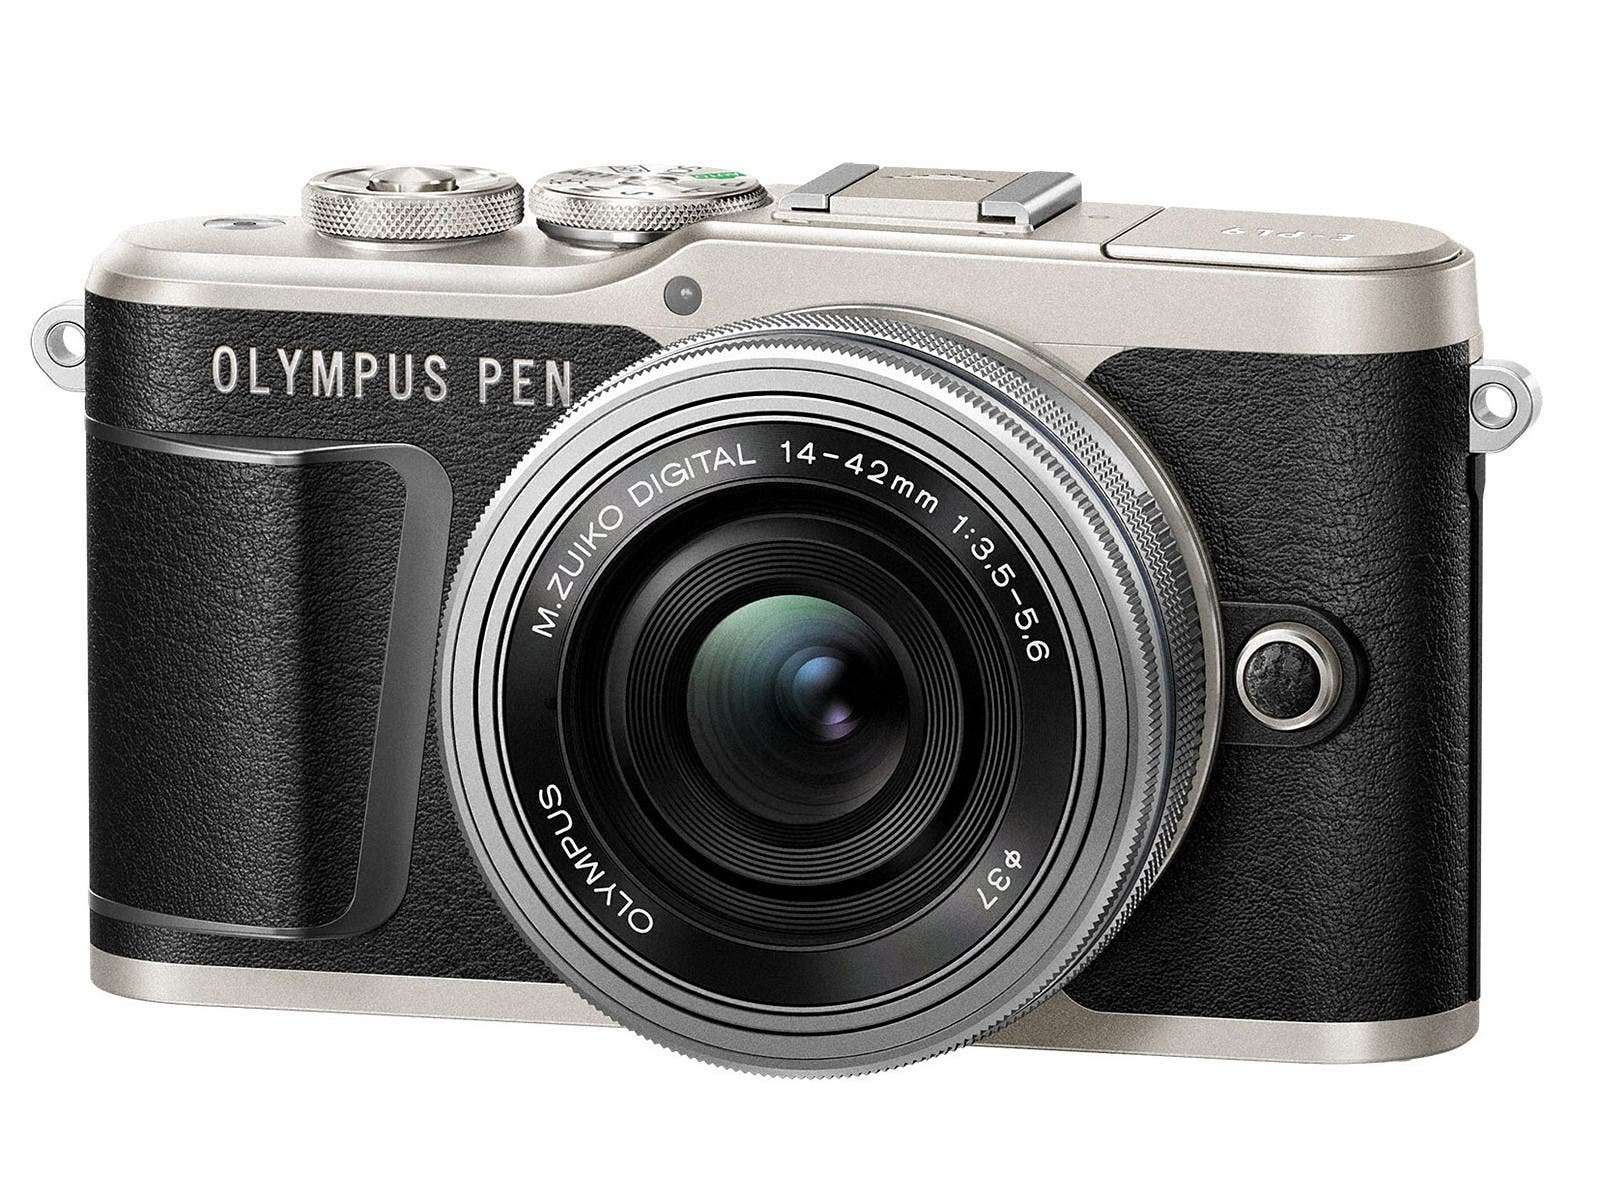 The New Olympus E-PL9 Features an Instant Film Art Filter